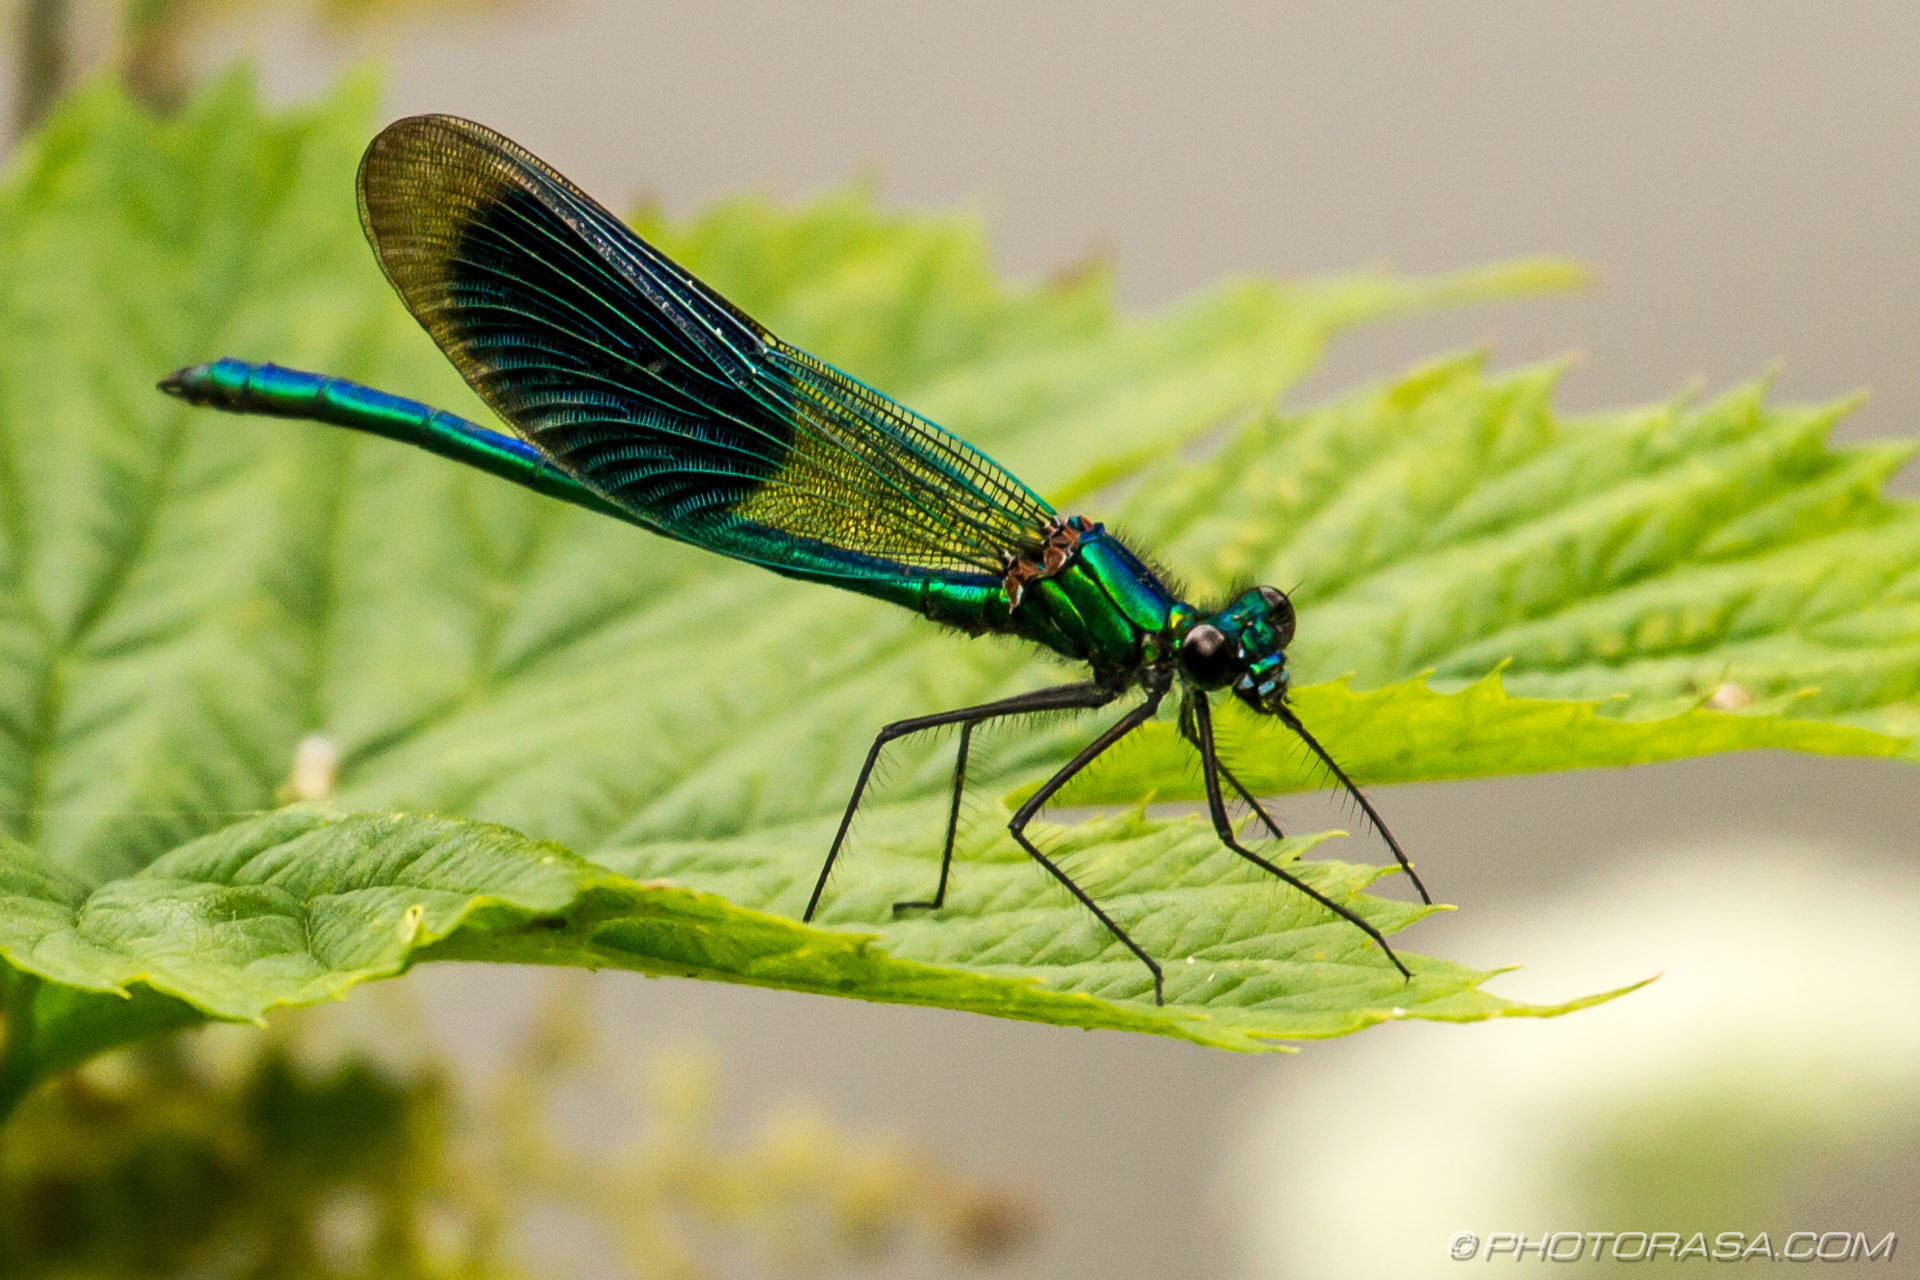 https://photorasa.com/damselflies/banded-demoiselle-damselfly/